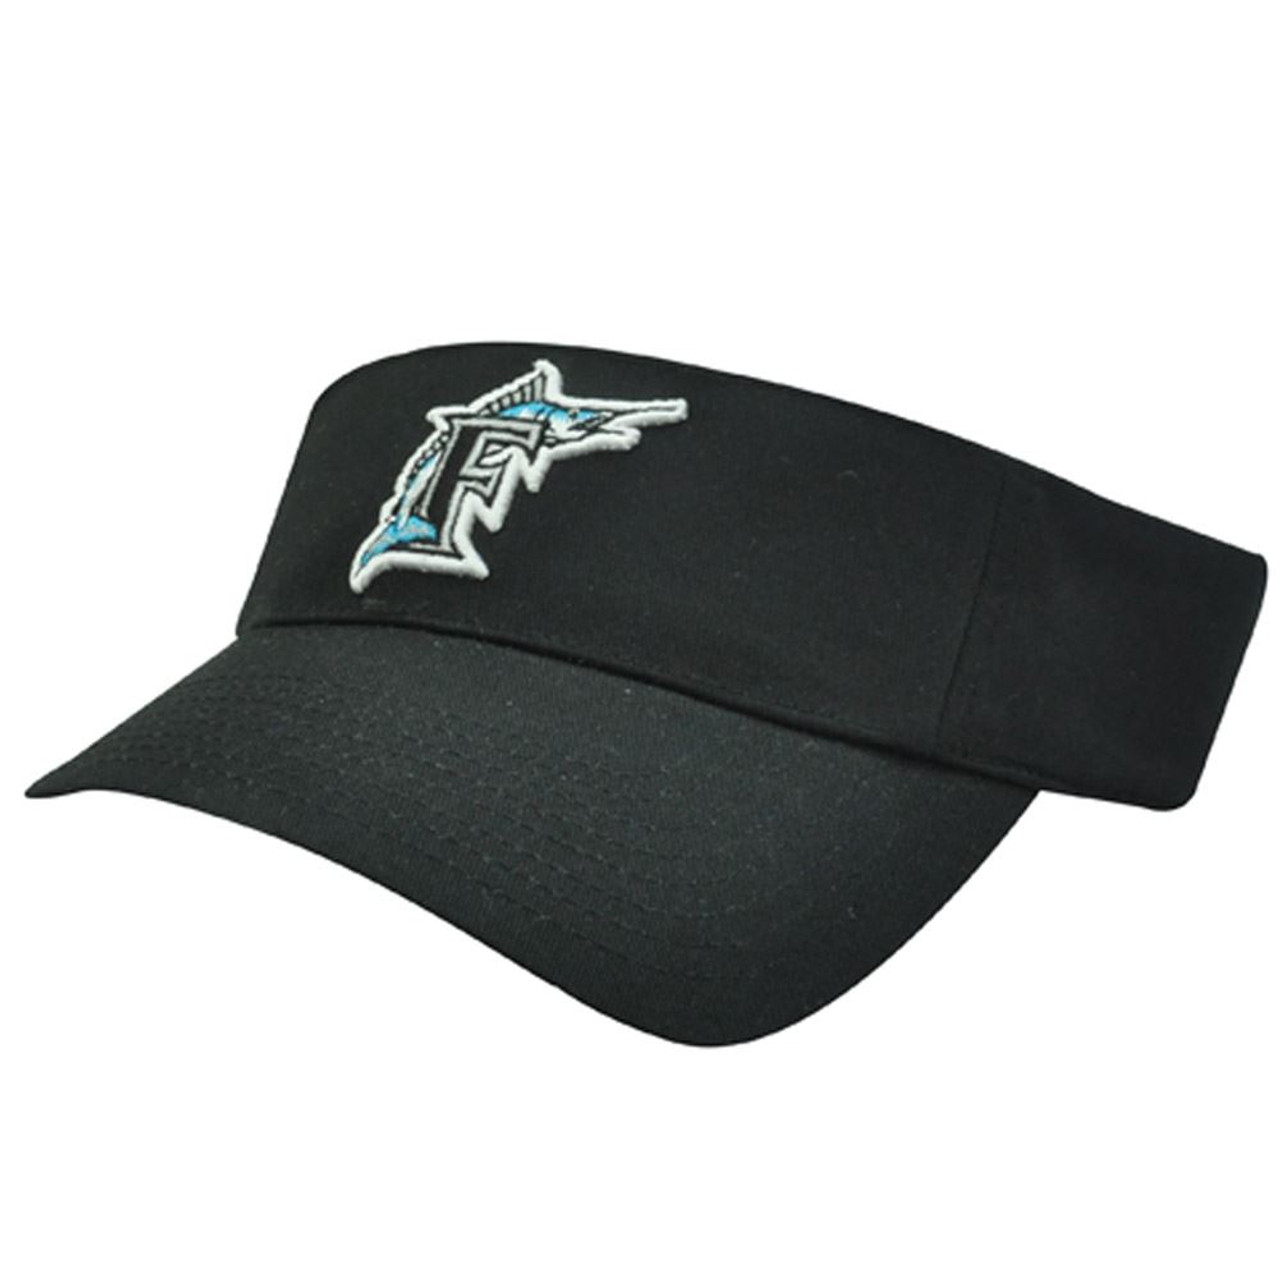 MLB Florida Marlins Miami Baseball Logo Cotton Sun Tennis Visor Hat Cap -  Sinbad Sports Store 1e228c609ae